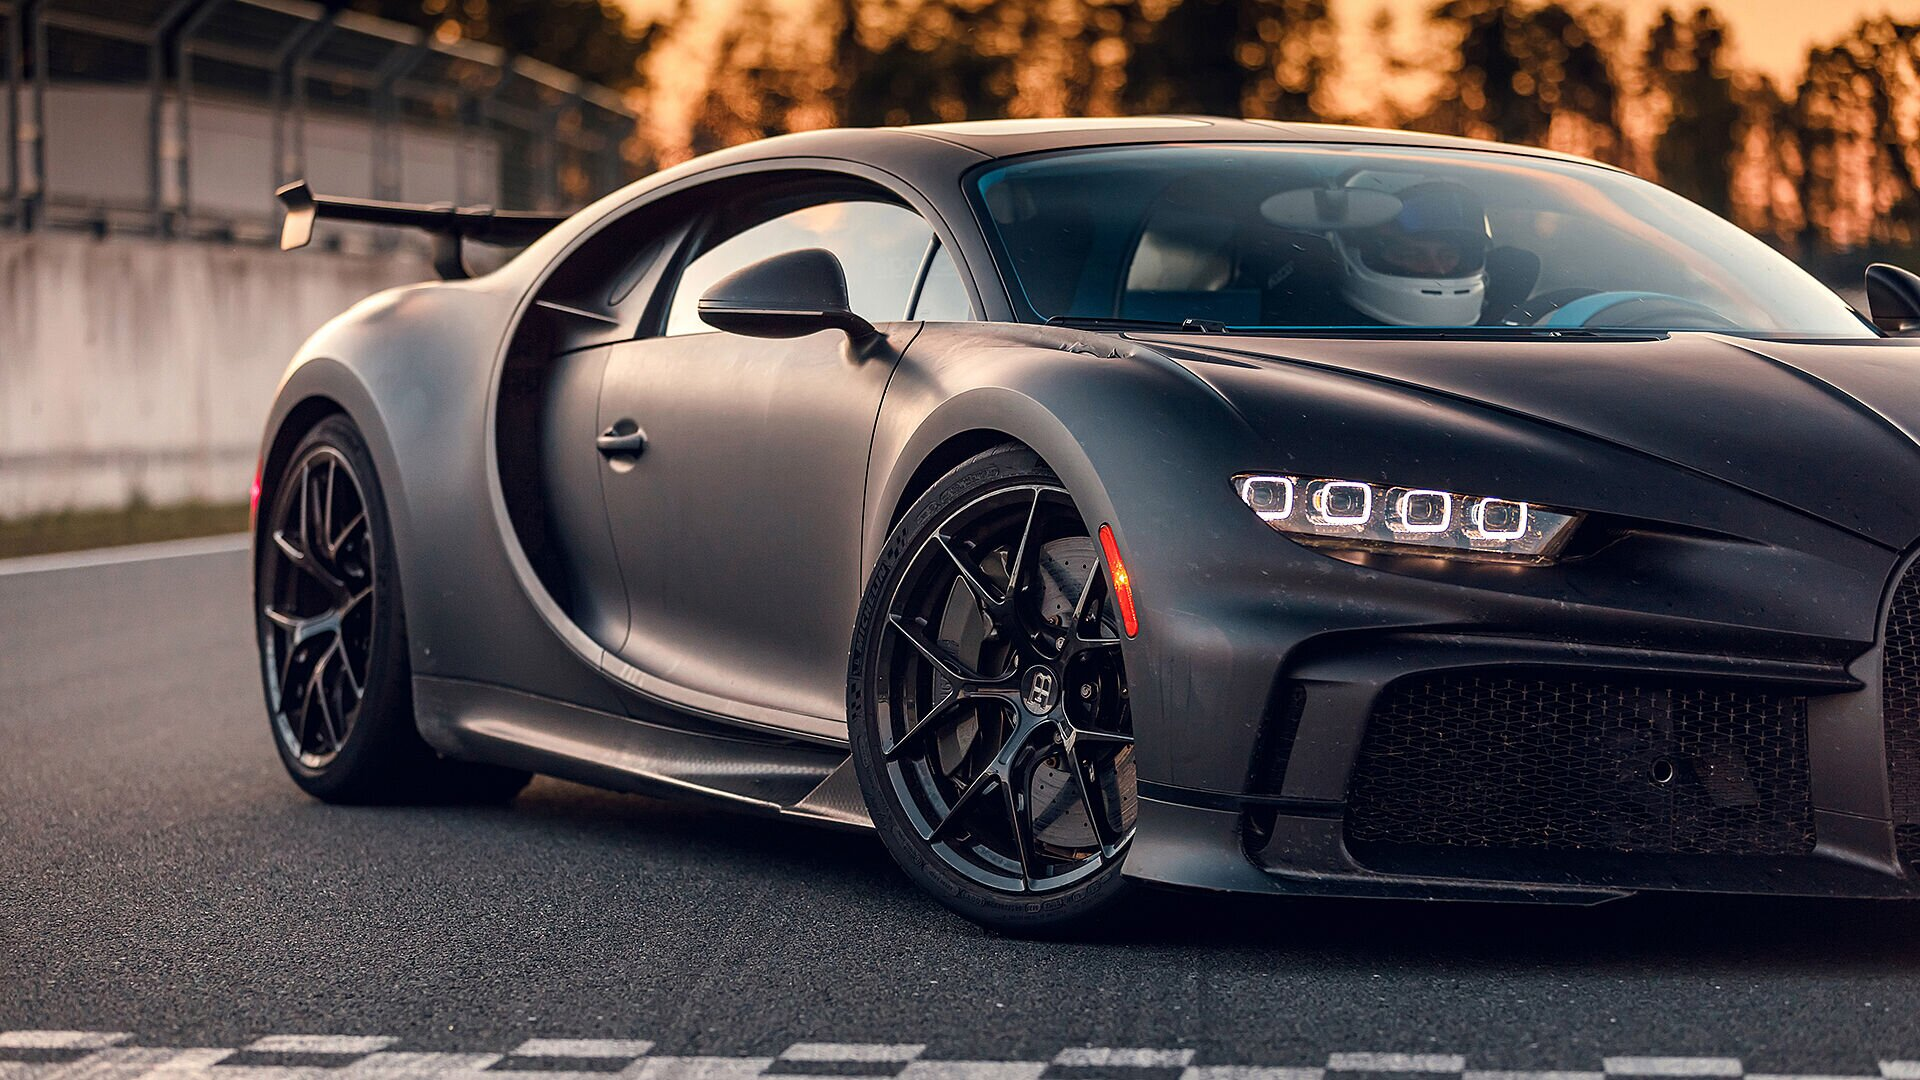 The technology of the Bugatti Chiron Pur Sport in detail - Image 5